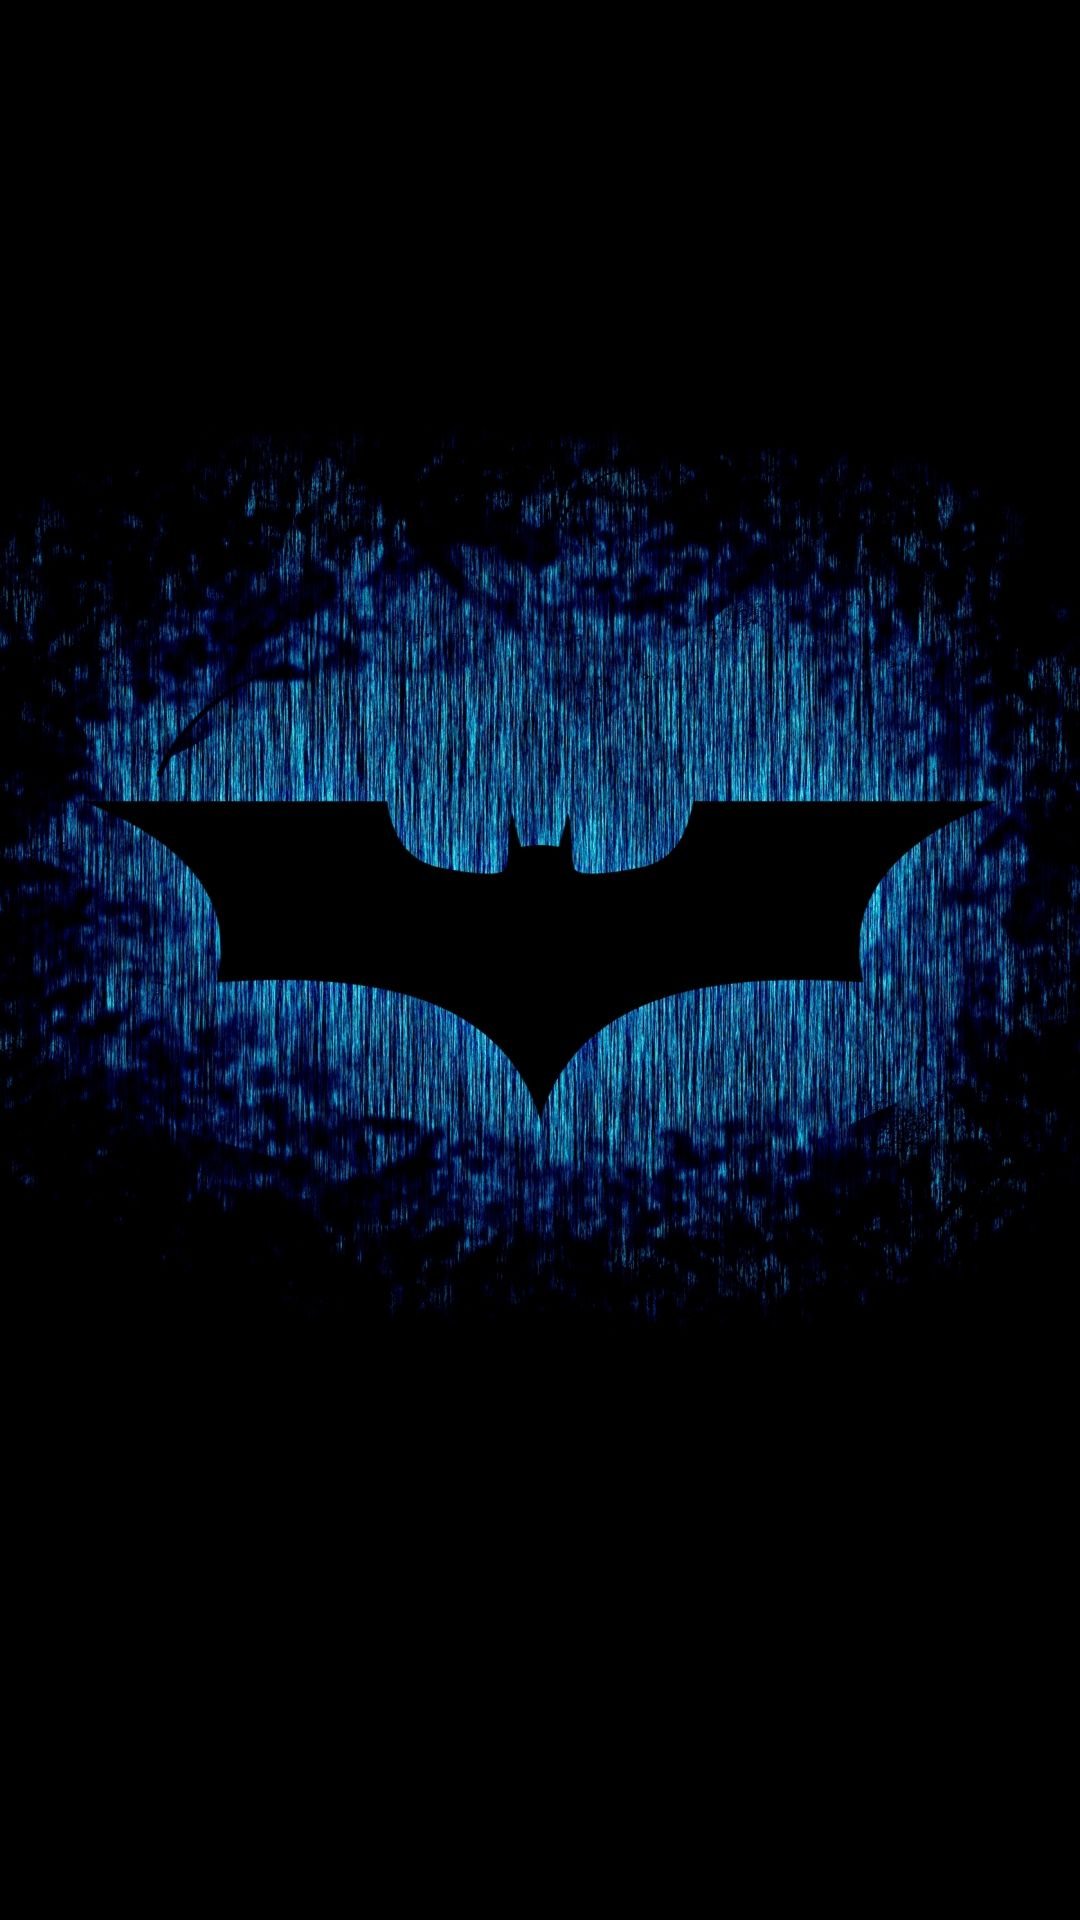 Batman Wallpapers for Iphone 7, Iphone 7 plus, Iphone 6